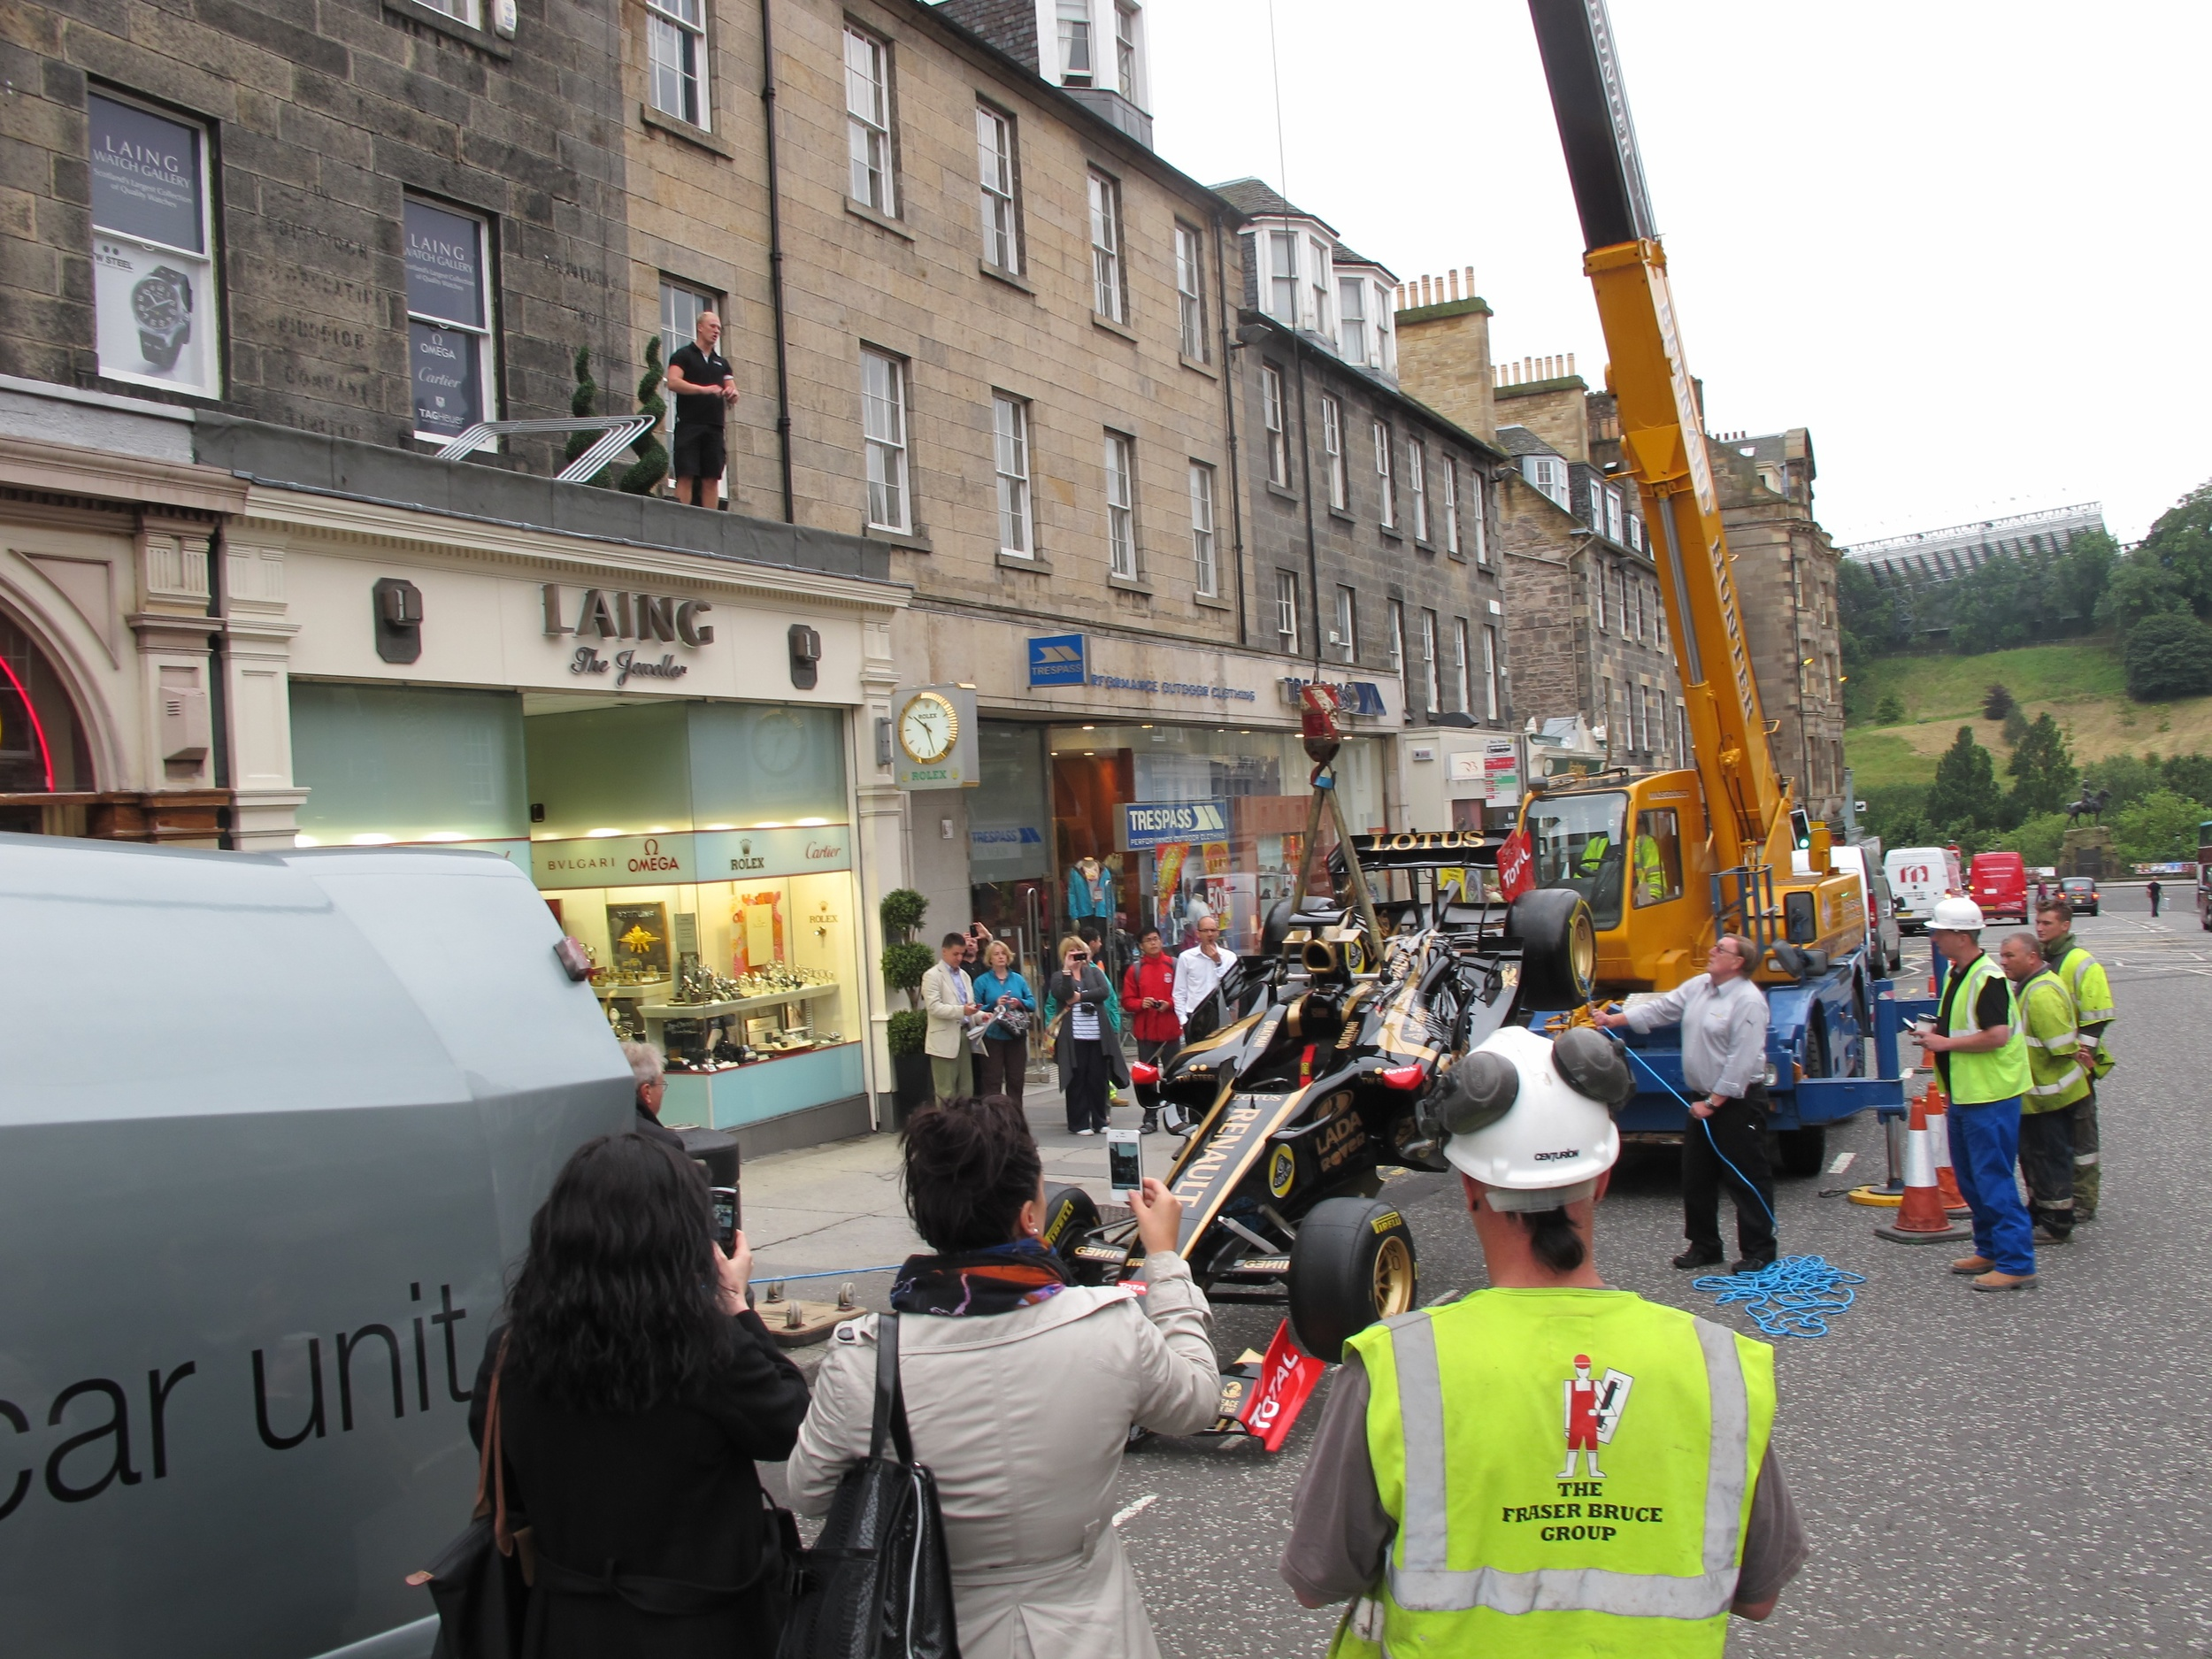 An F1 Lotus Renault served up on a shop roof in Edinburgh 2011